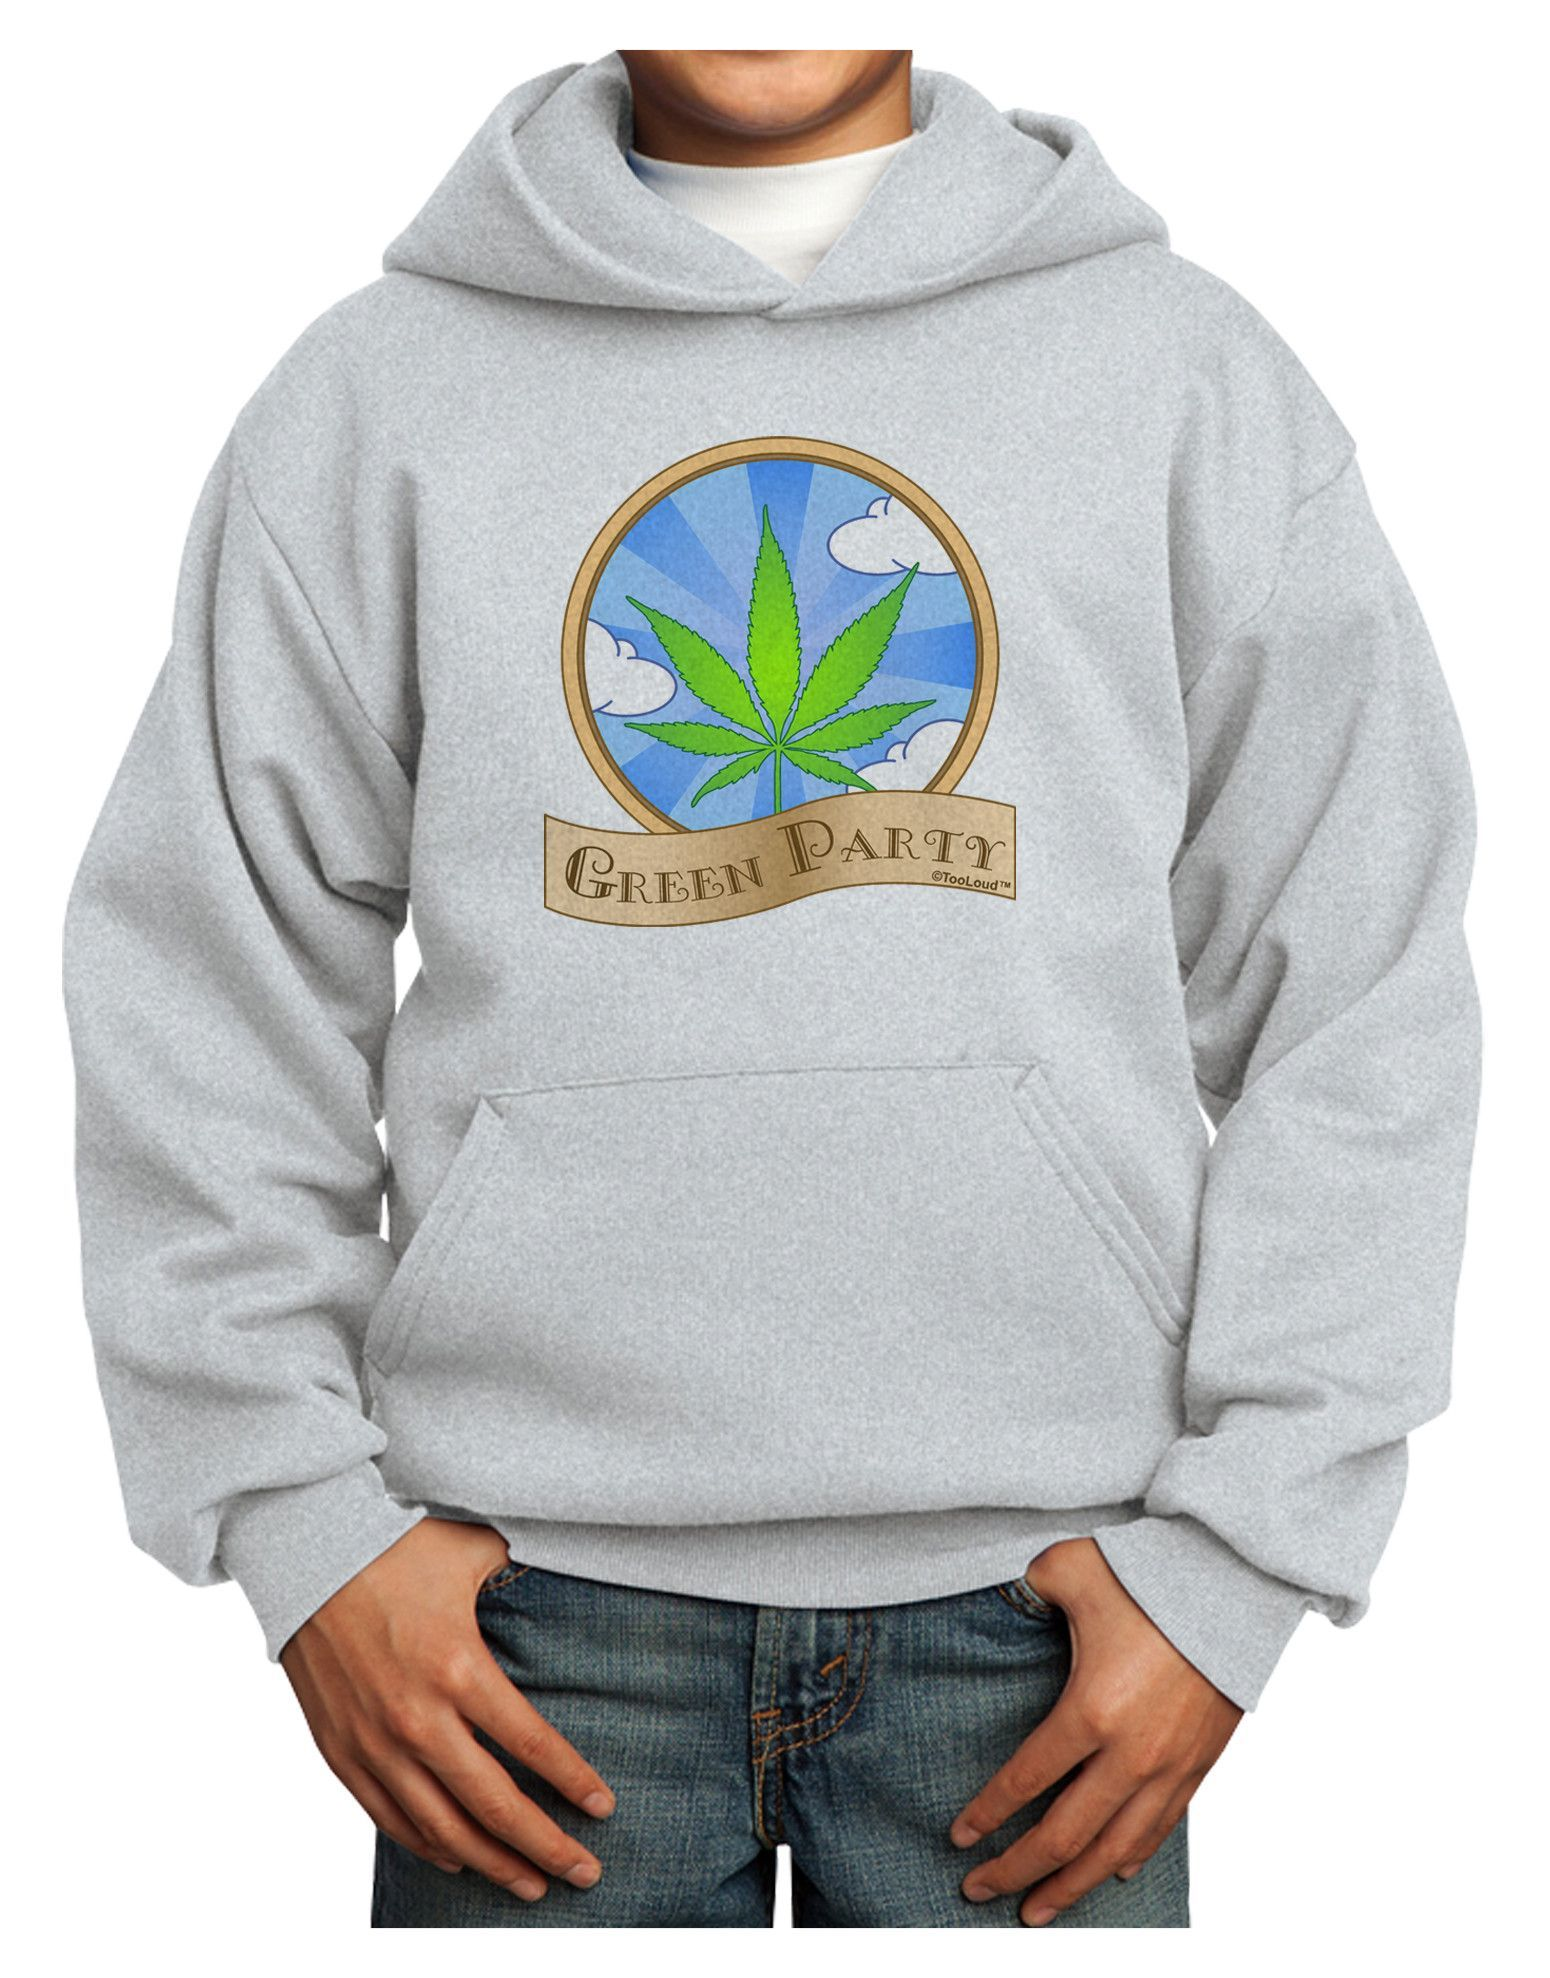 Green Party Symbol Youth Hoodie Pullover Sweatshirt Green Party